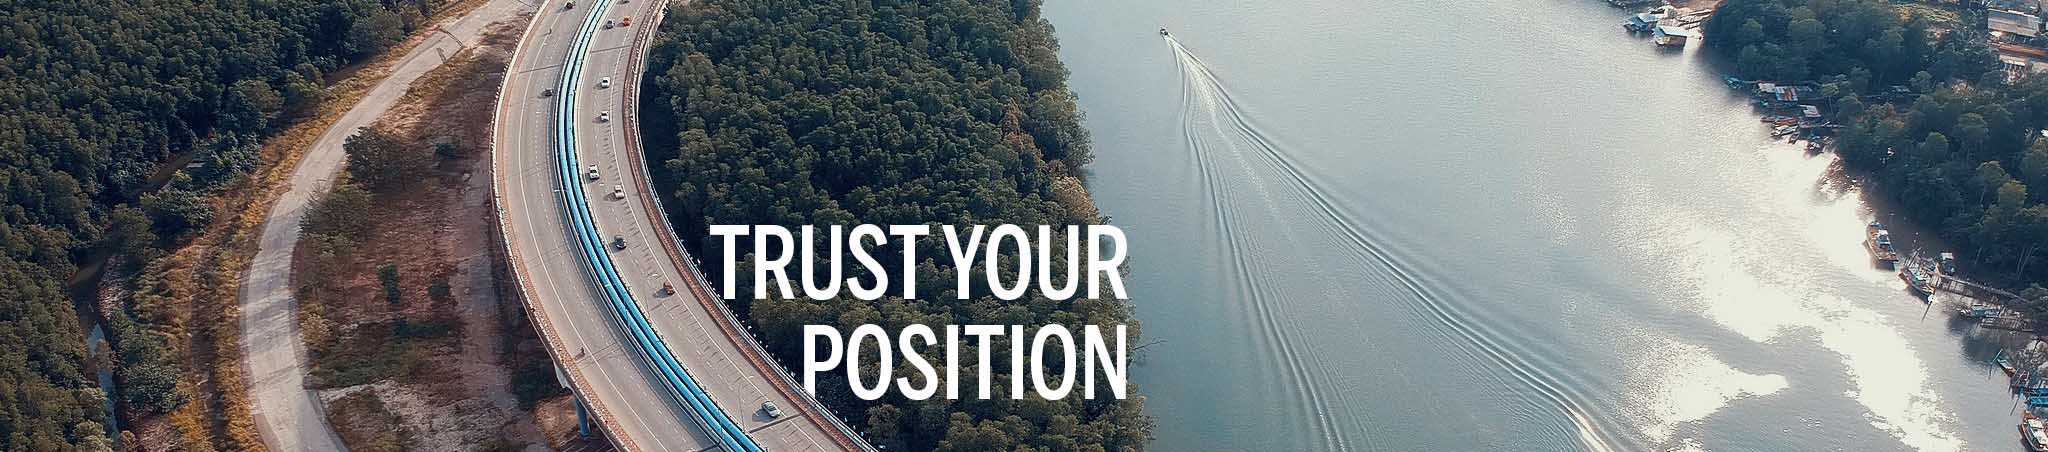 trust your position